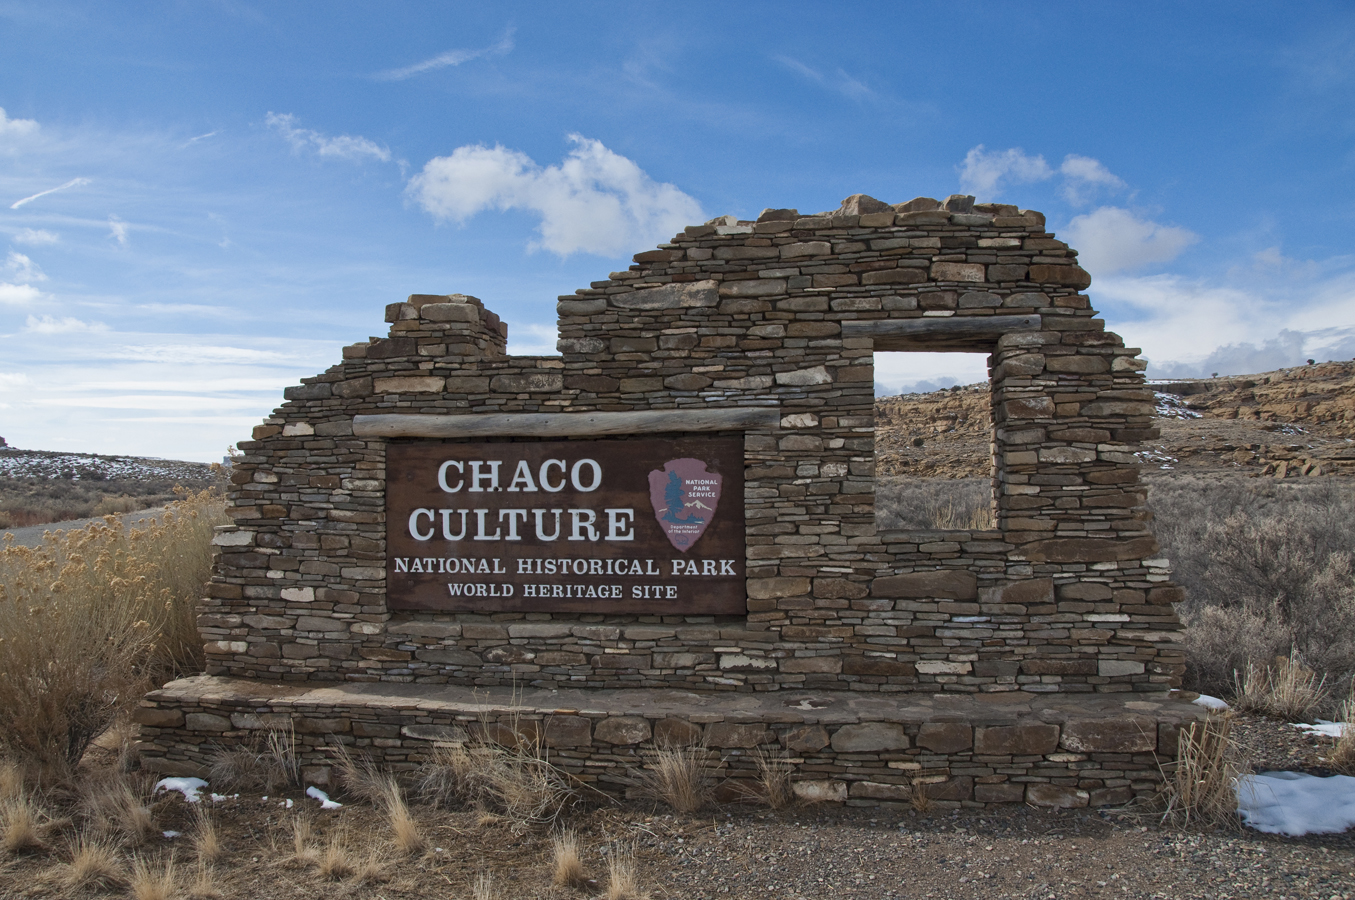 Ancient Civilizations of Power and Influence: Chaco